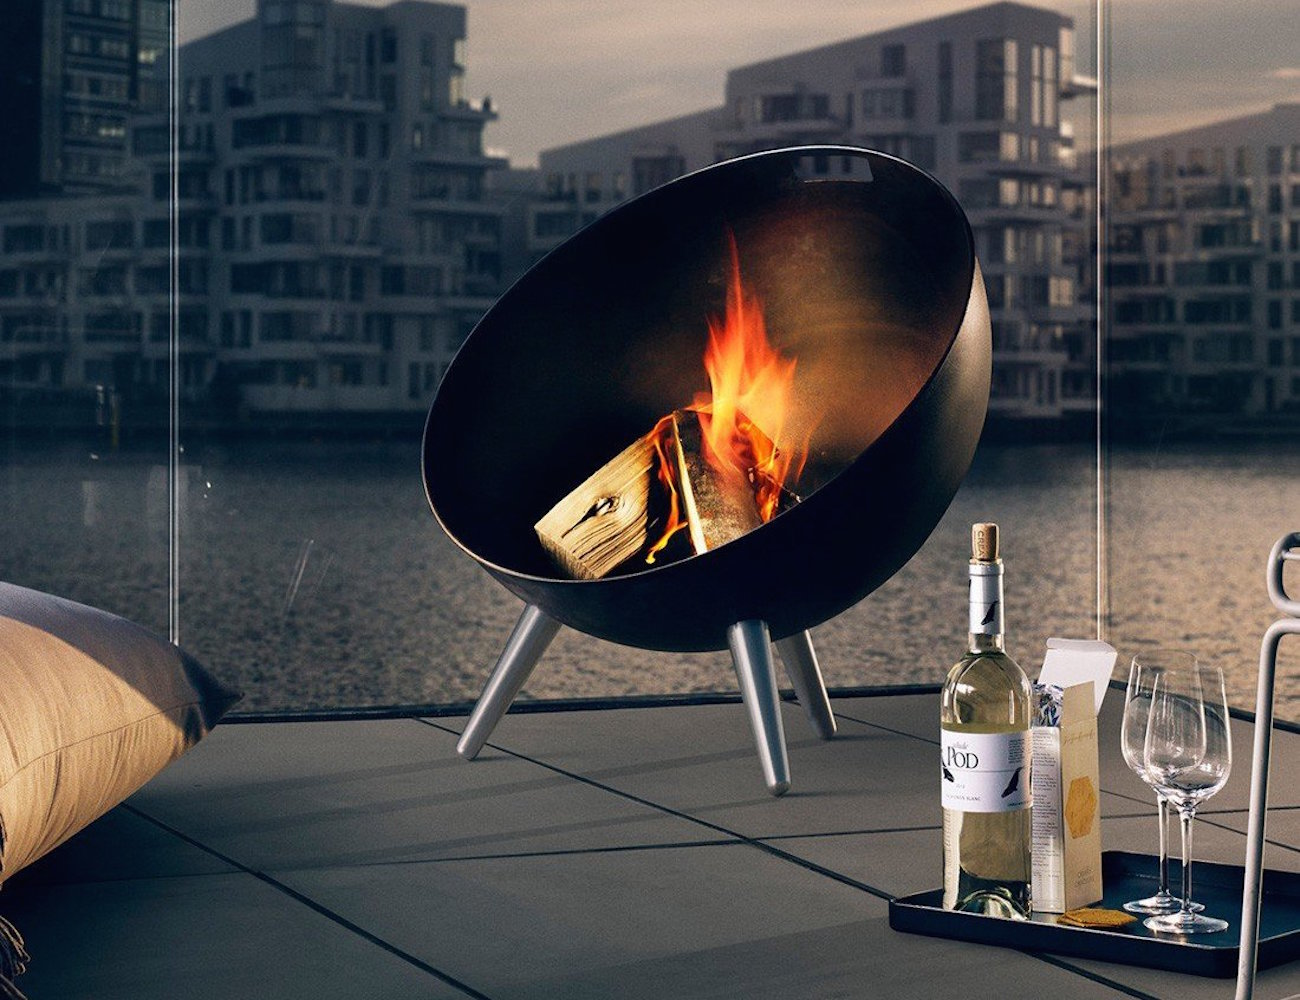 fireglobe fireplace by eva solo beautiful accessory for